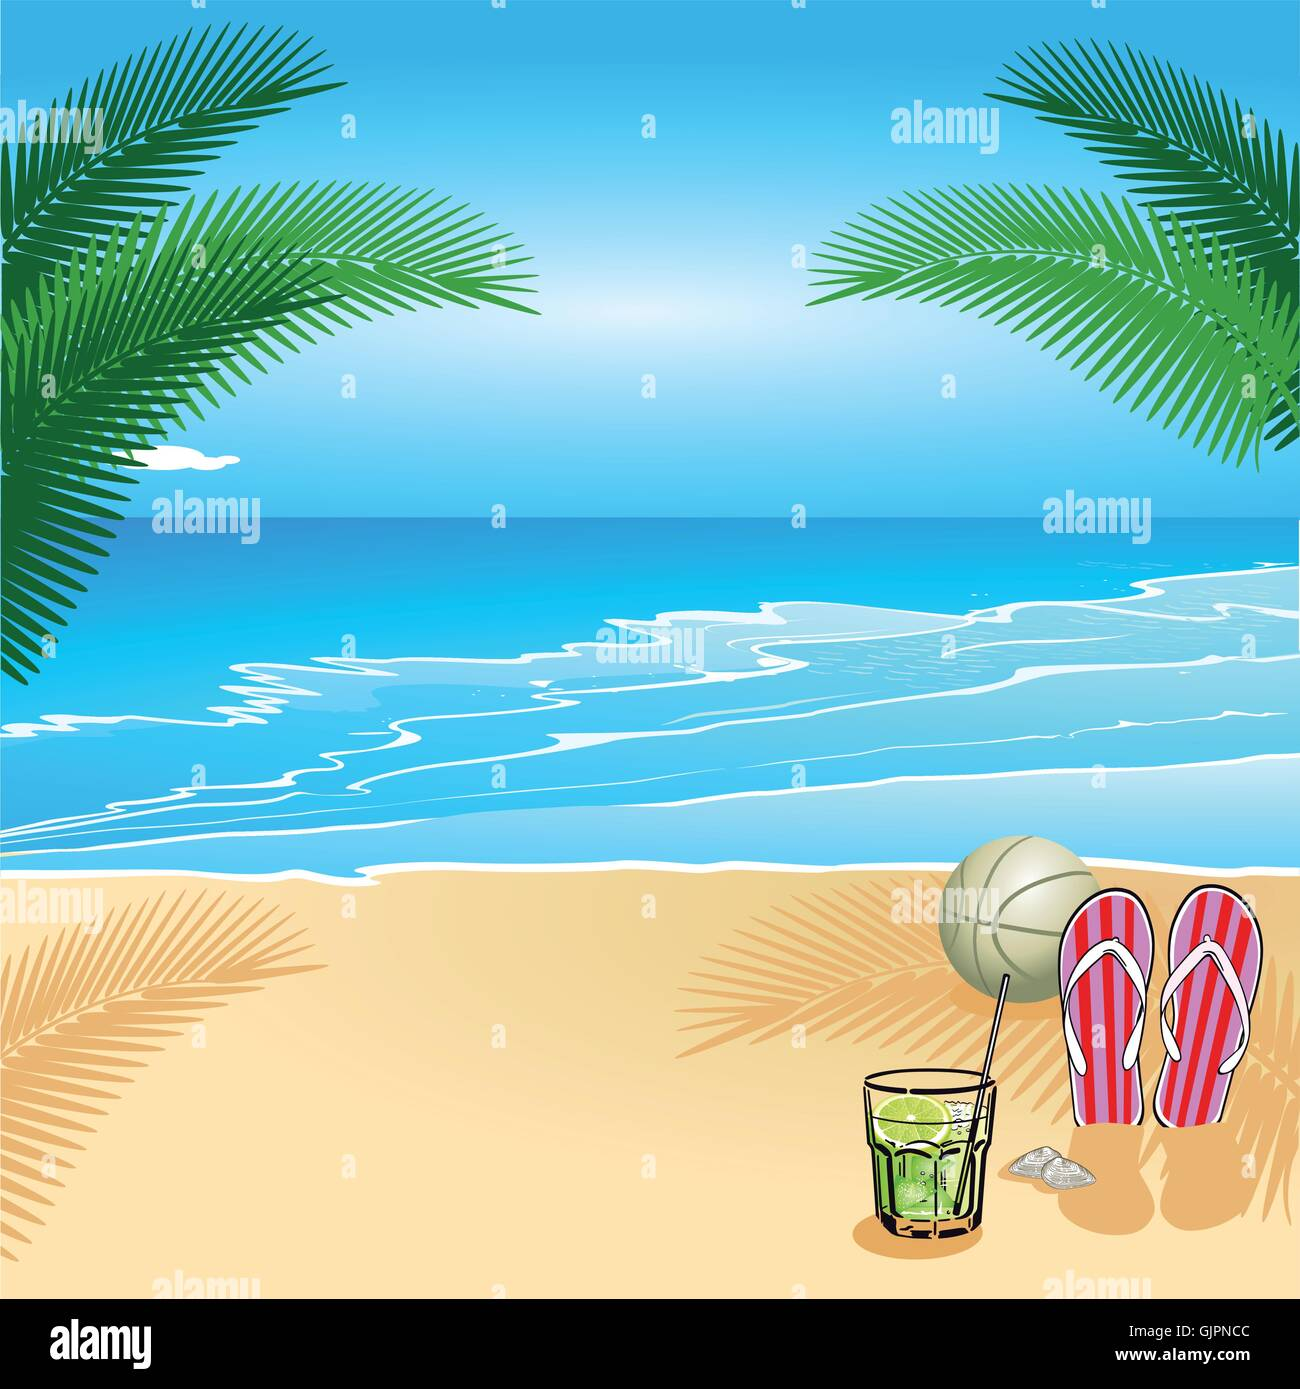 Relaxing at the beach - Stock Vector